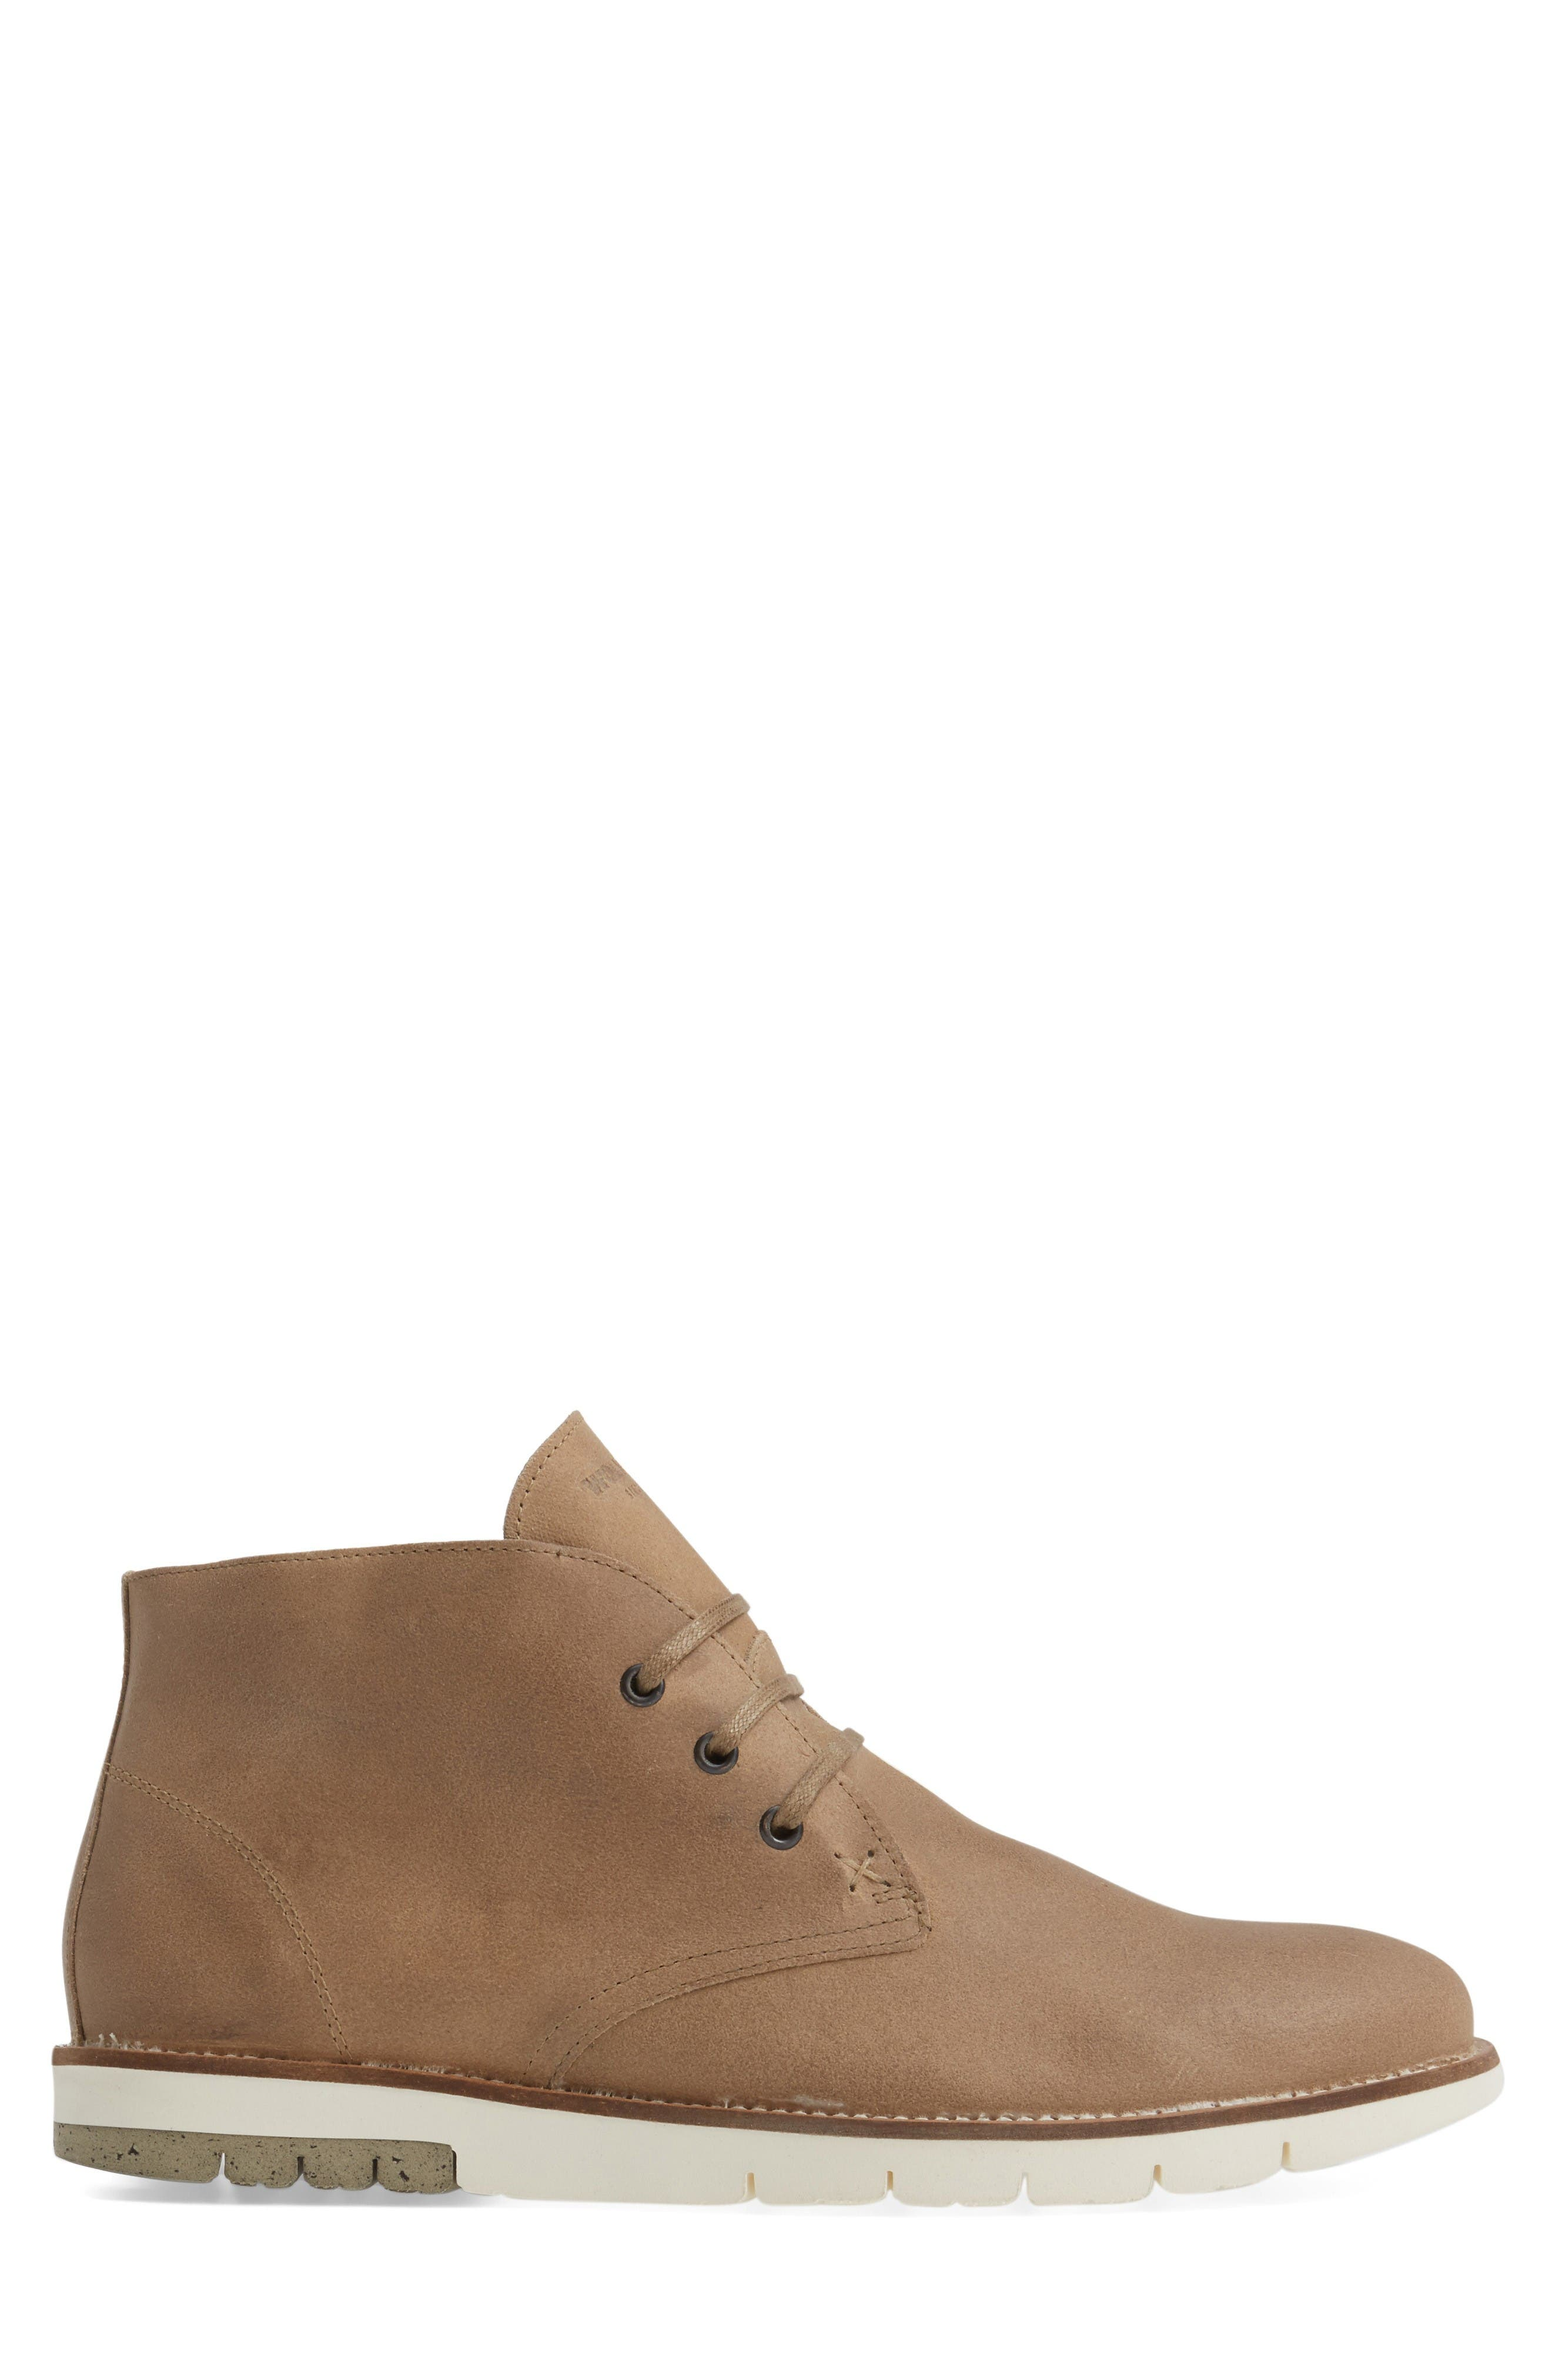 Gibson Chukka Boot,                             Alternate thumbnail 3, color,                             Stone Suede